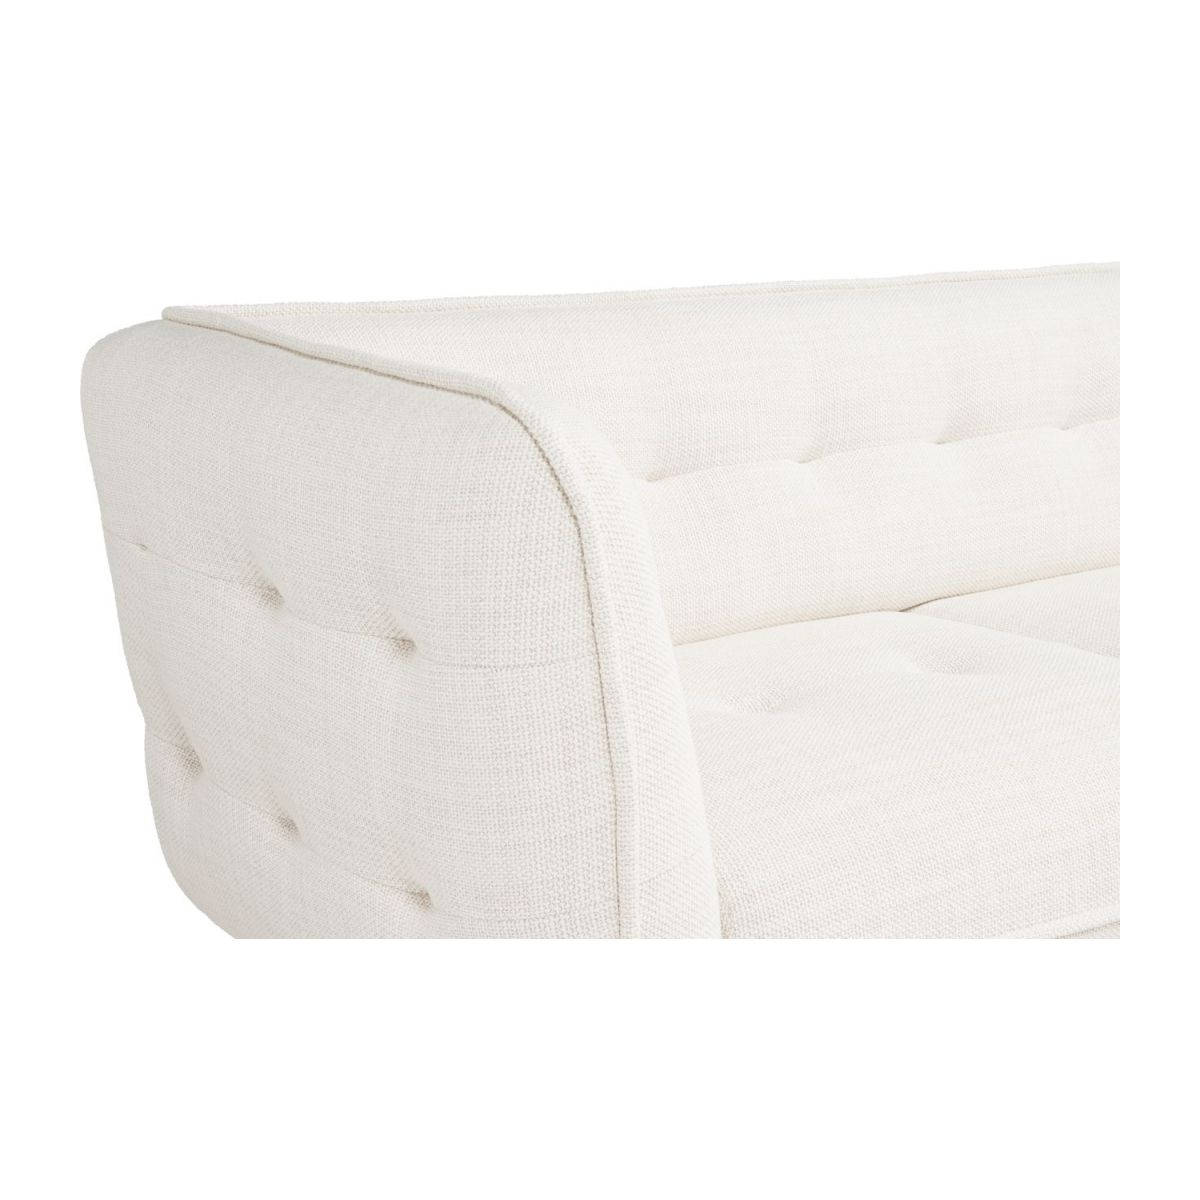 2 seater sofa in Fasoli fabric, snow white and dark legs n°5